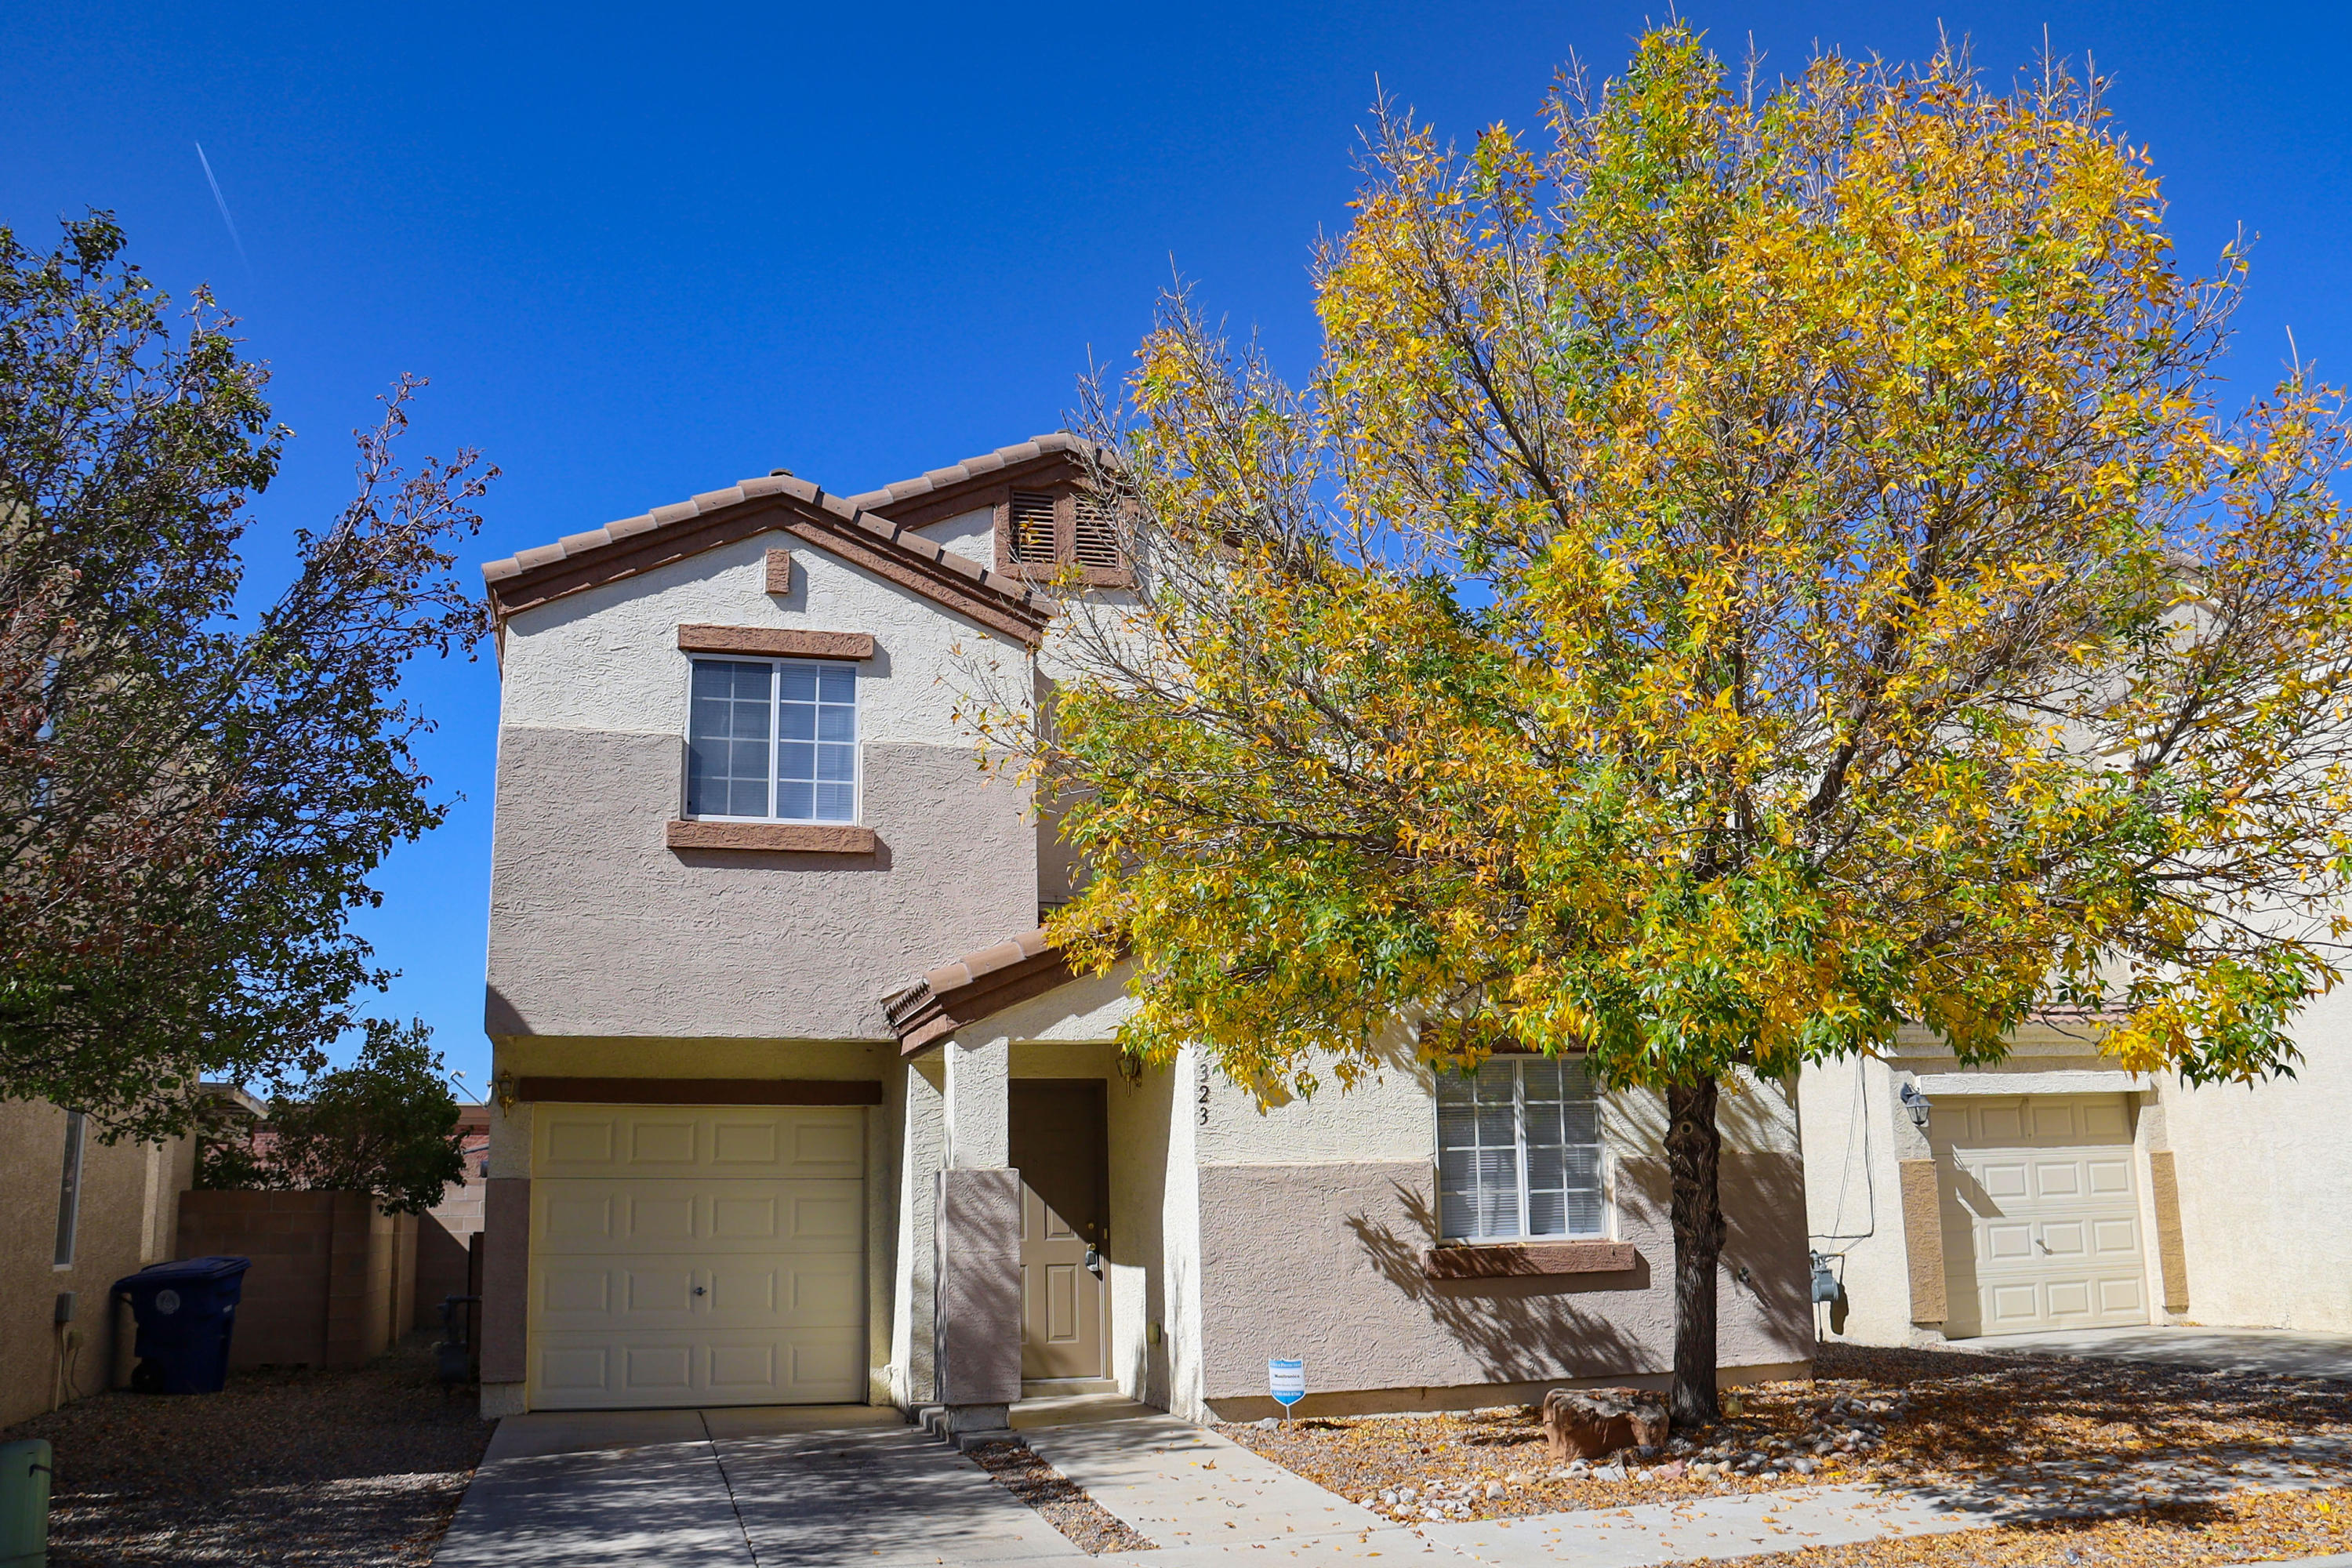 Immaculate 4BR, 3BA in secure, gated community.  Spacious master bedroom is truly fit for royalty. When winter arrives, you will certainly enjoy the warmth of your cozy fireplace.  New carpet and paint through out.  Close to base and shopping.  Easy care landscaping!